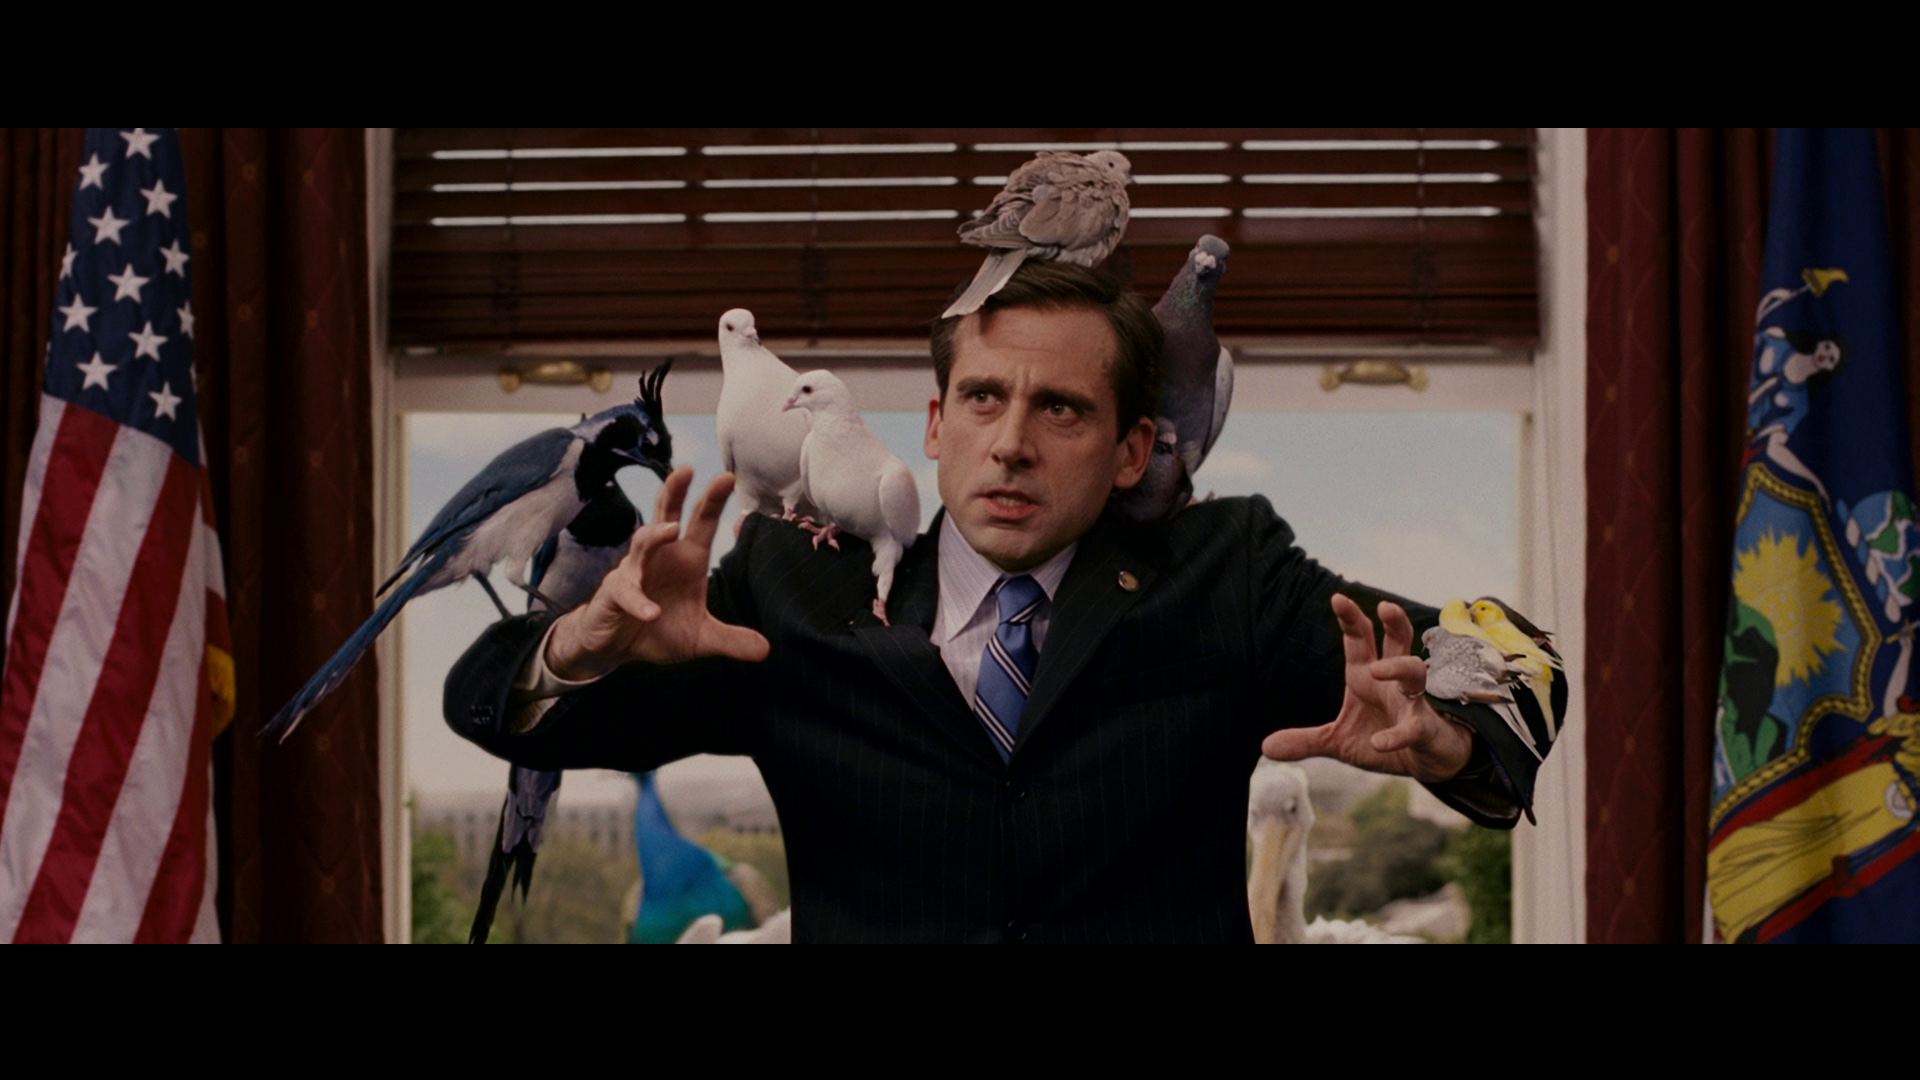 evan almighty full movie download in hindi 480p